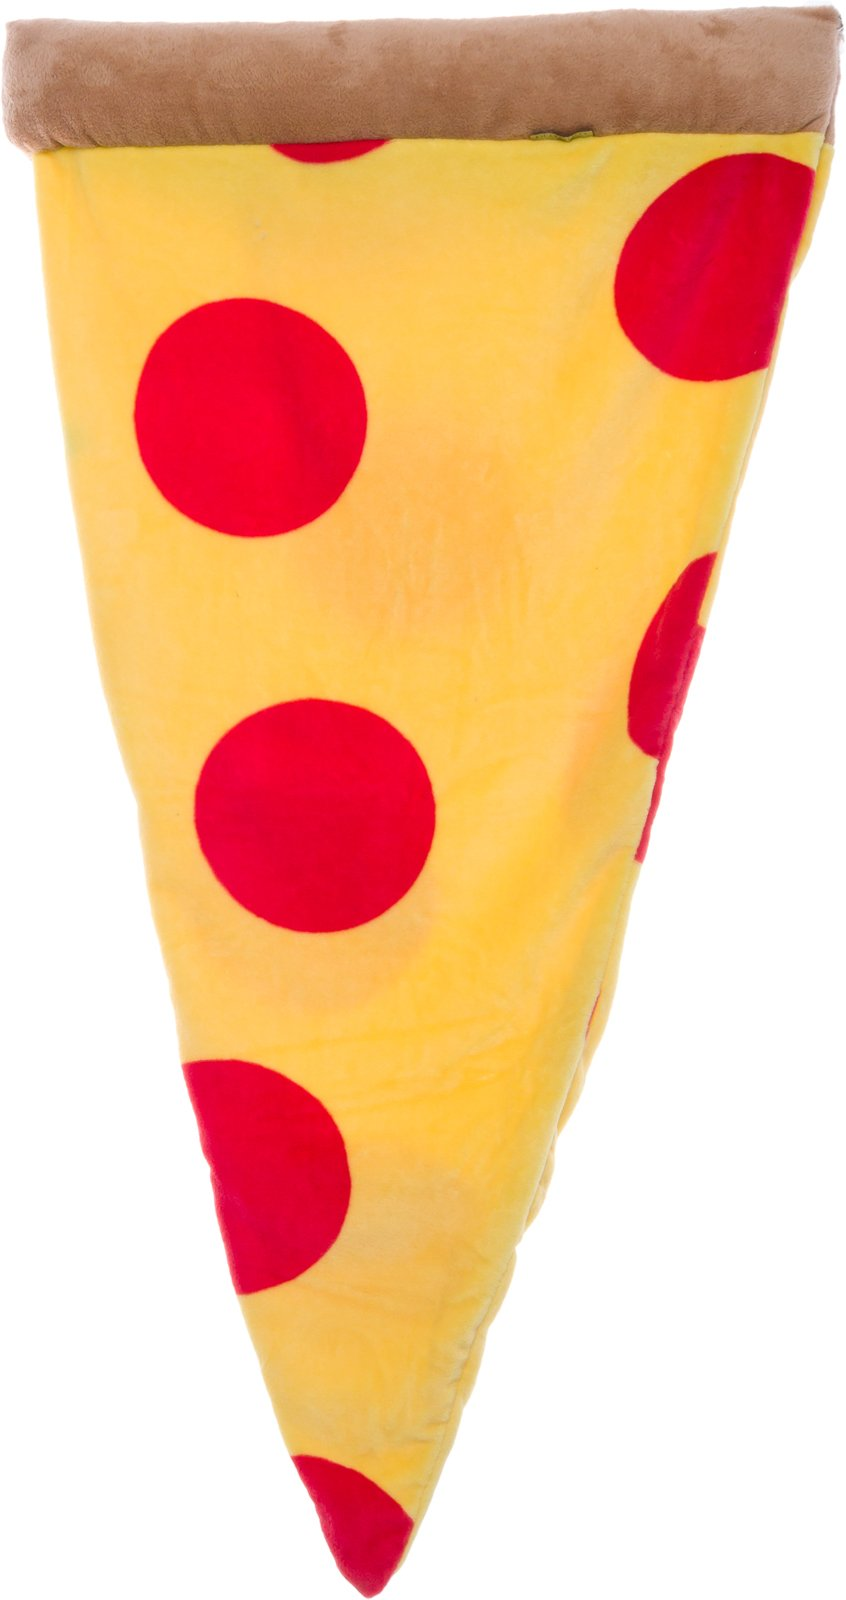 Silver Lilly Pizza Sleeping Bag - Plush Fleece Giant Pizza Slice Blanket for Kids and Adults by (Adult) by Silver Lilly (Image #2)